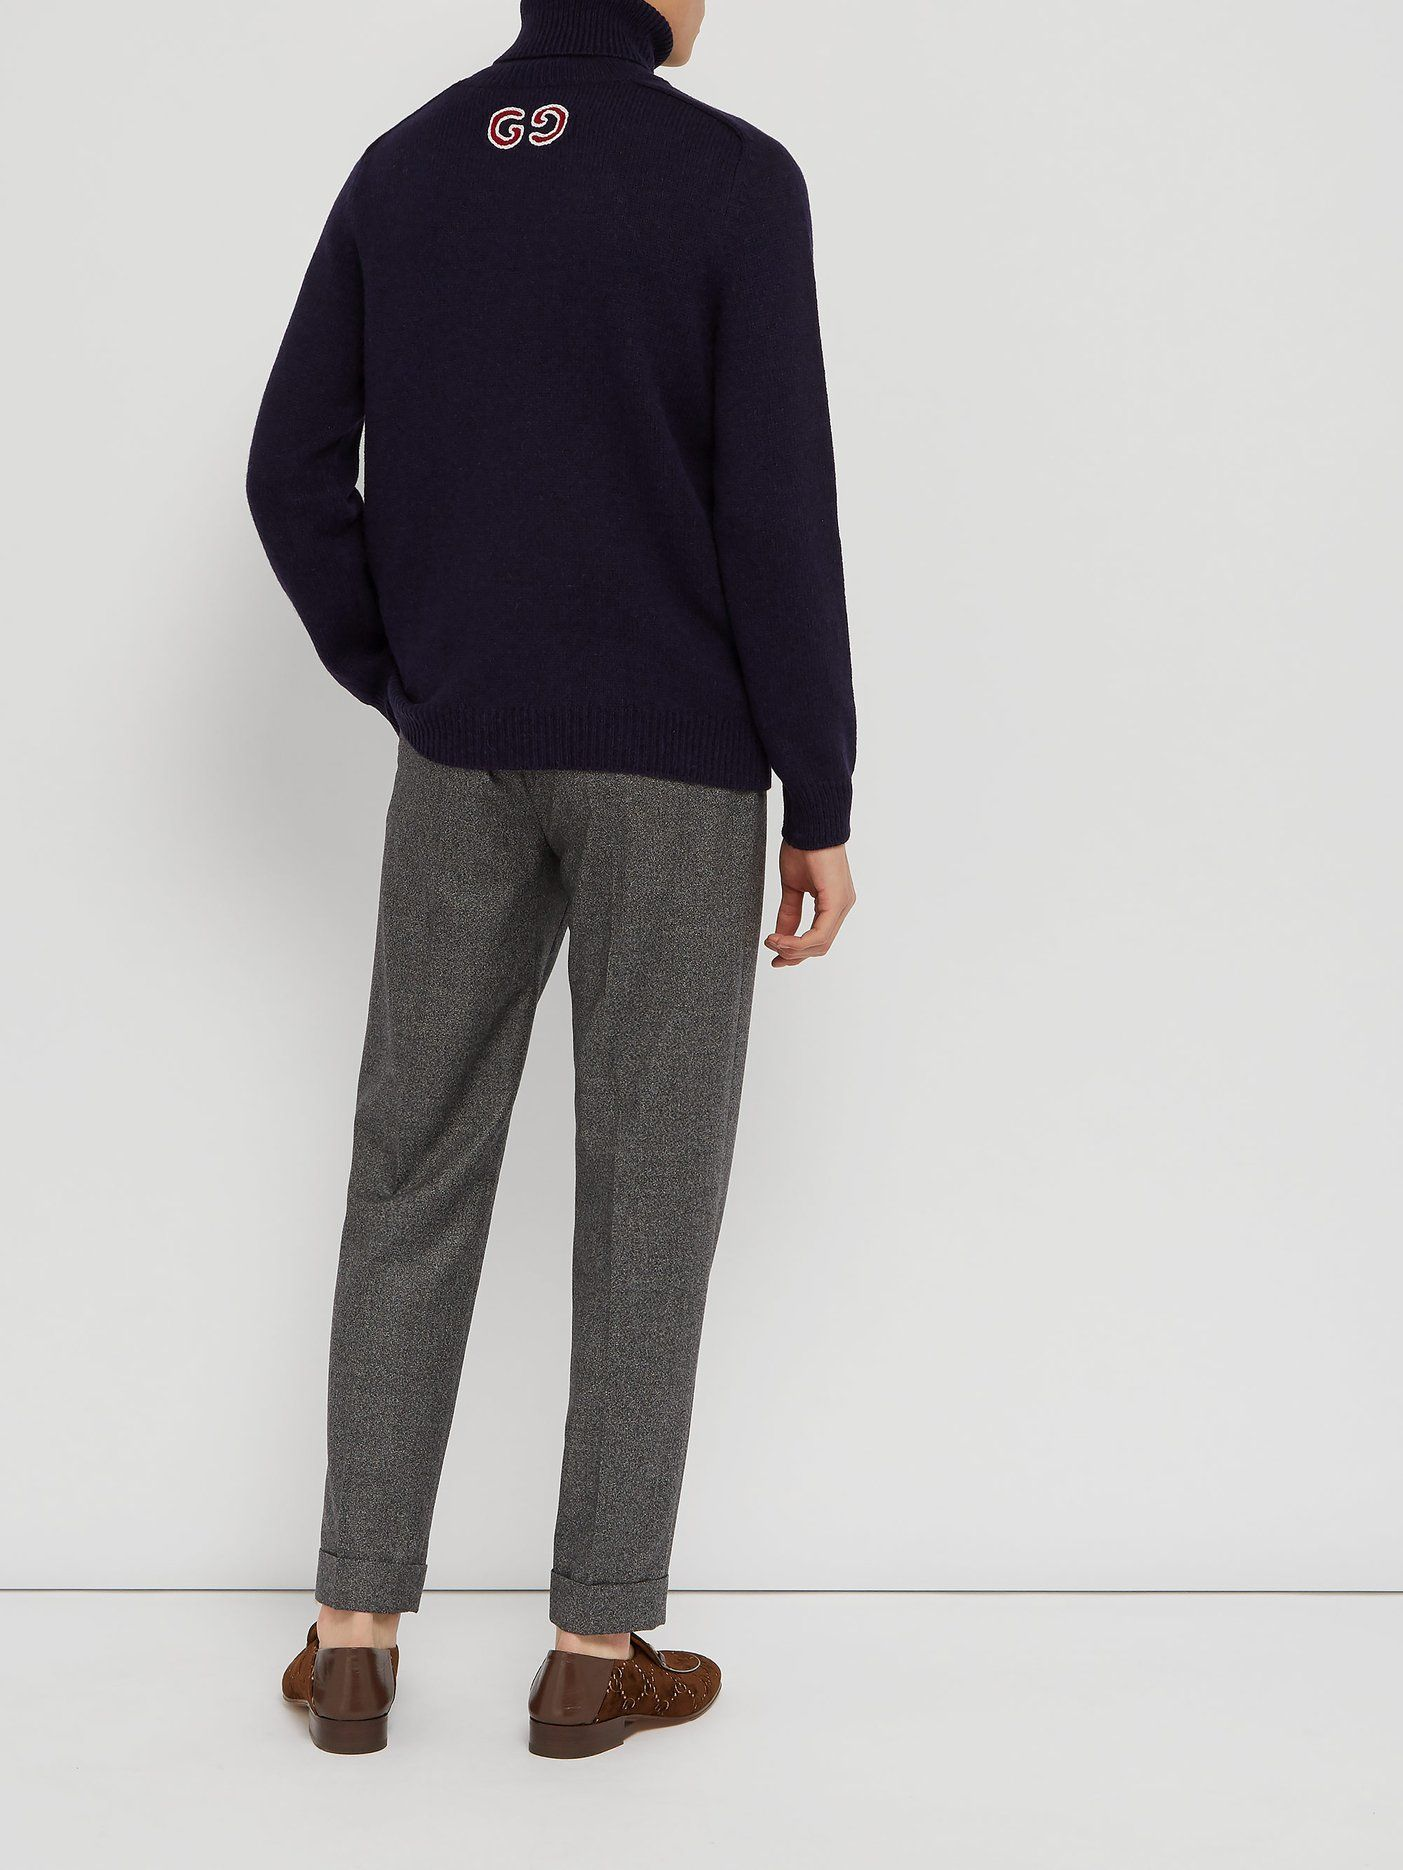 fac76f1a3 GG-embroidered wool-blend roll-neck sweater   Gucci   MATCHESFASHION.COM UK